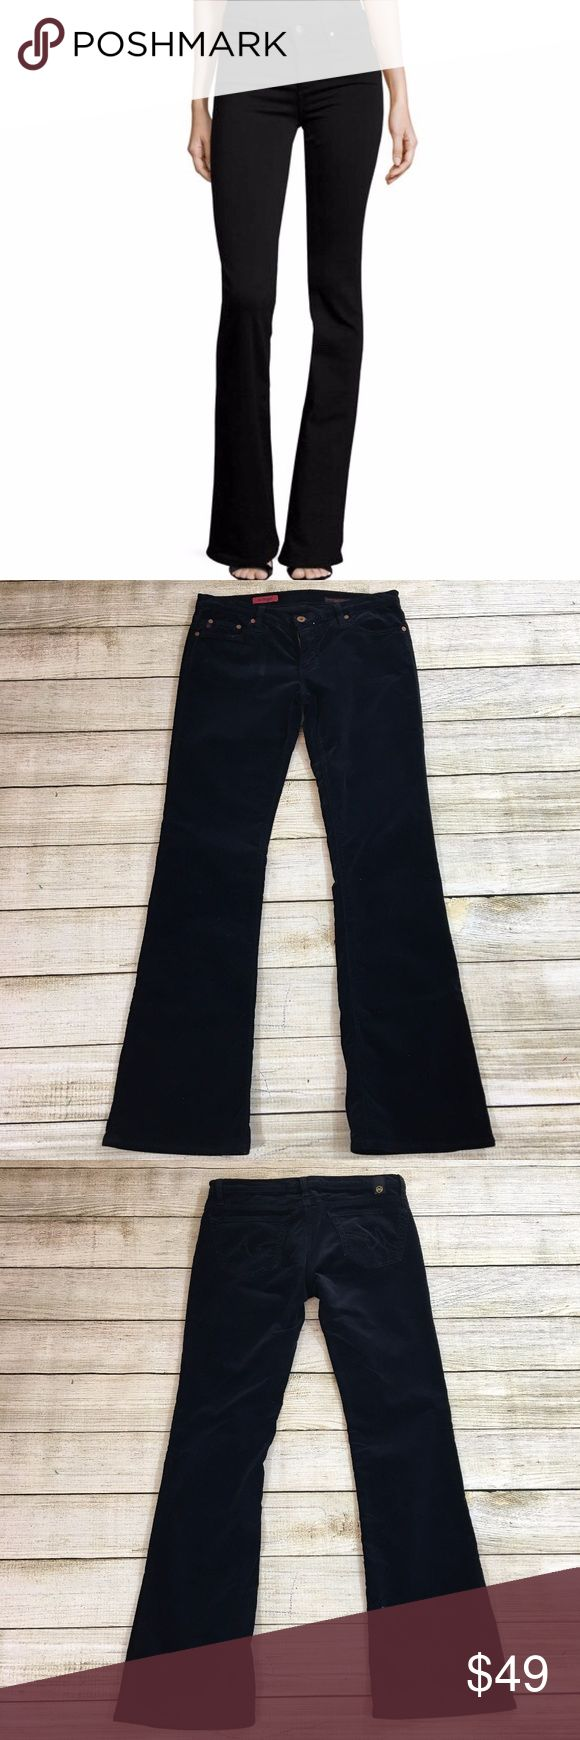 AG ADRIANO GOLDSCHMIED the Angel Jeans Inseam: 32 inches Lay Flat Waist: 15 inches Lay Flat Leg Opening: 10.5 inches Rise: 8 inches Fabric: 95% cotton, 5% polyurethane (these pants are velvet) Description: excellent condition  Bundle & Save: 10% off or more  NO TRADES Shipping within 24 hours Ag Adriano Goldschmied Jeans Flare & Wide Leg